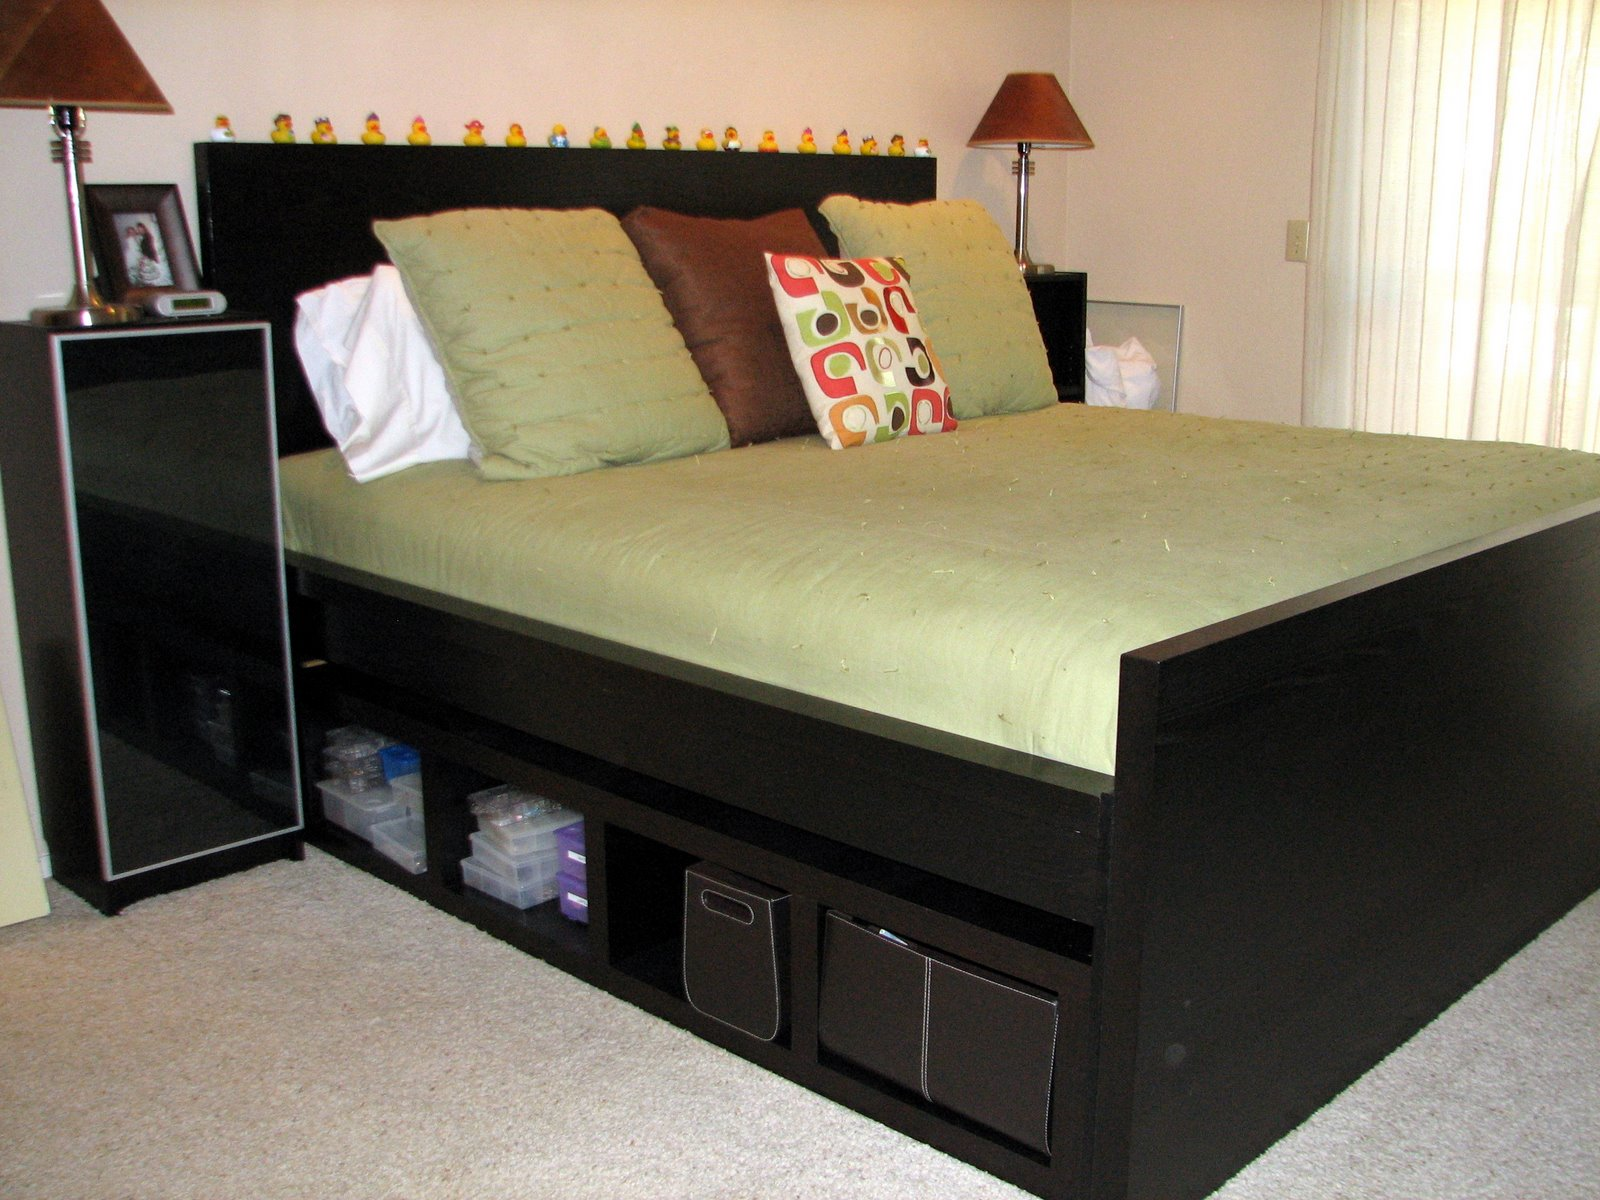 king size headboard ikea a simple way to make your bed more stylish homesfeed. Black Bedroom Furniture Sets. Home Design Ideas